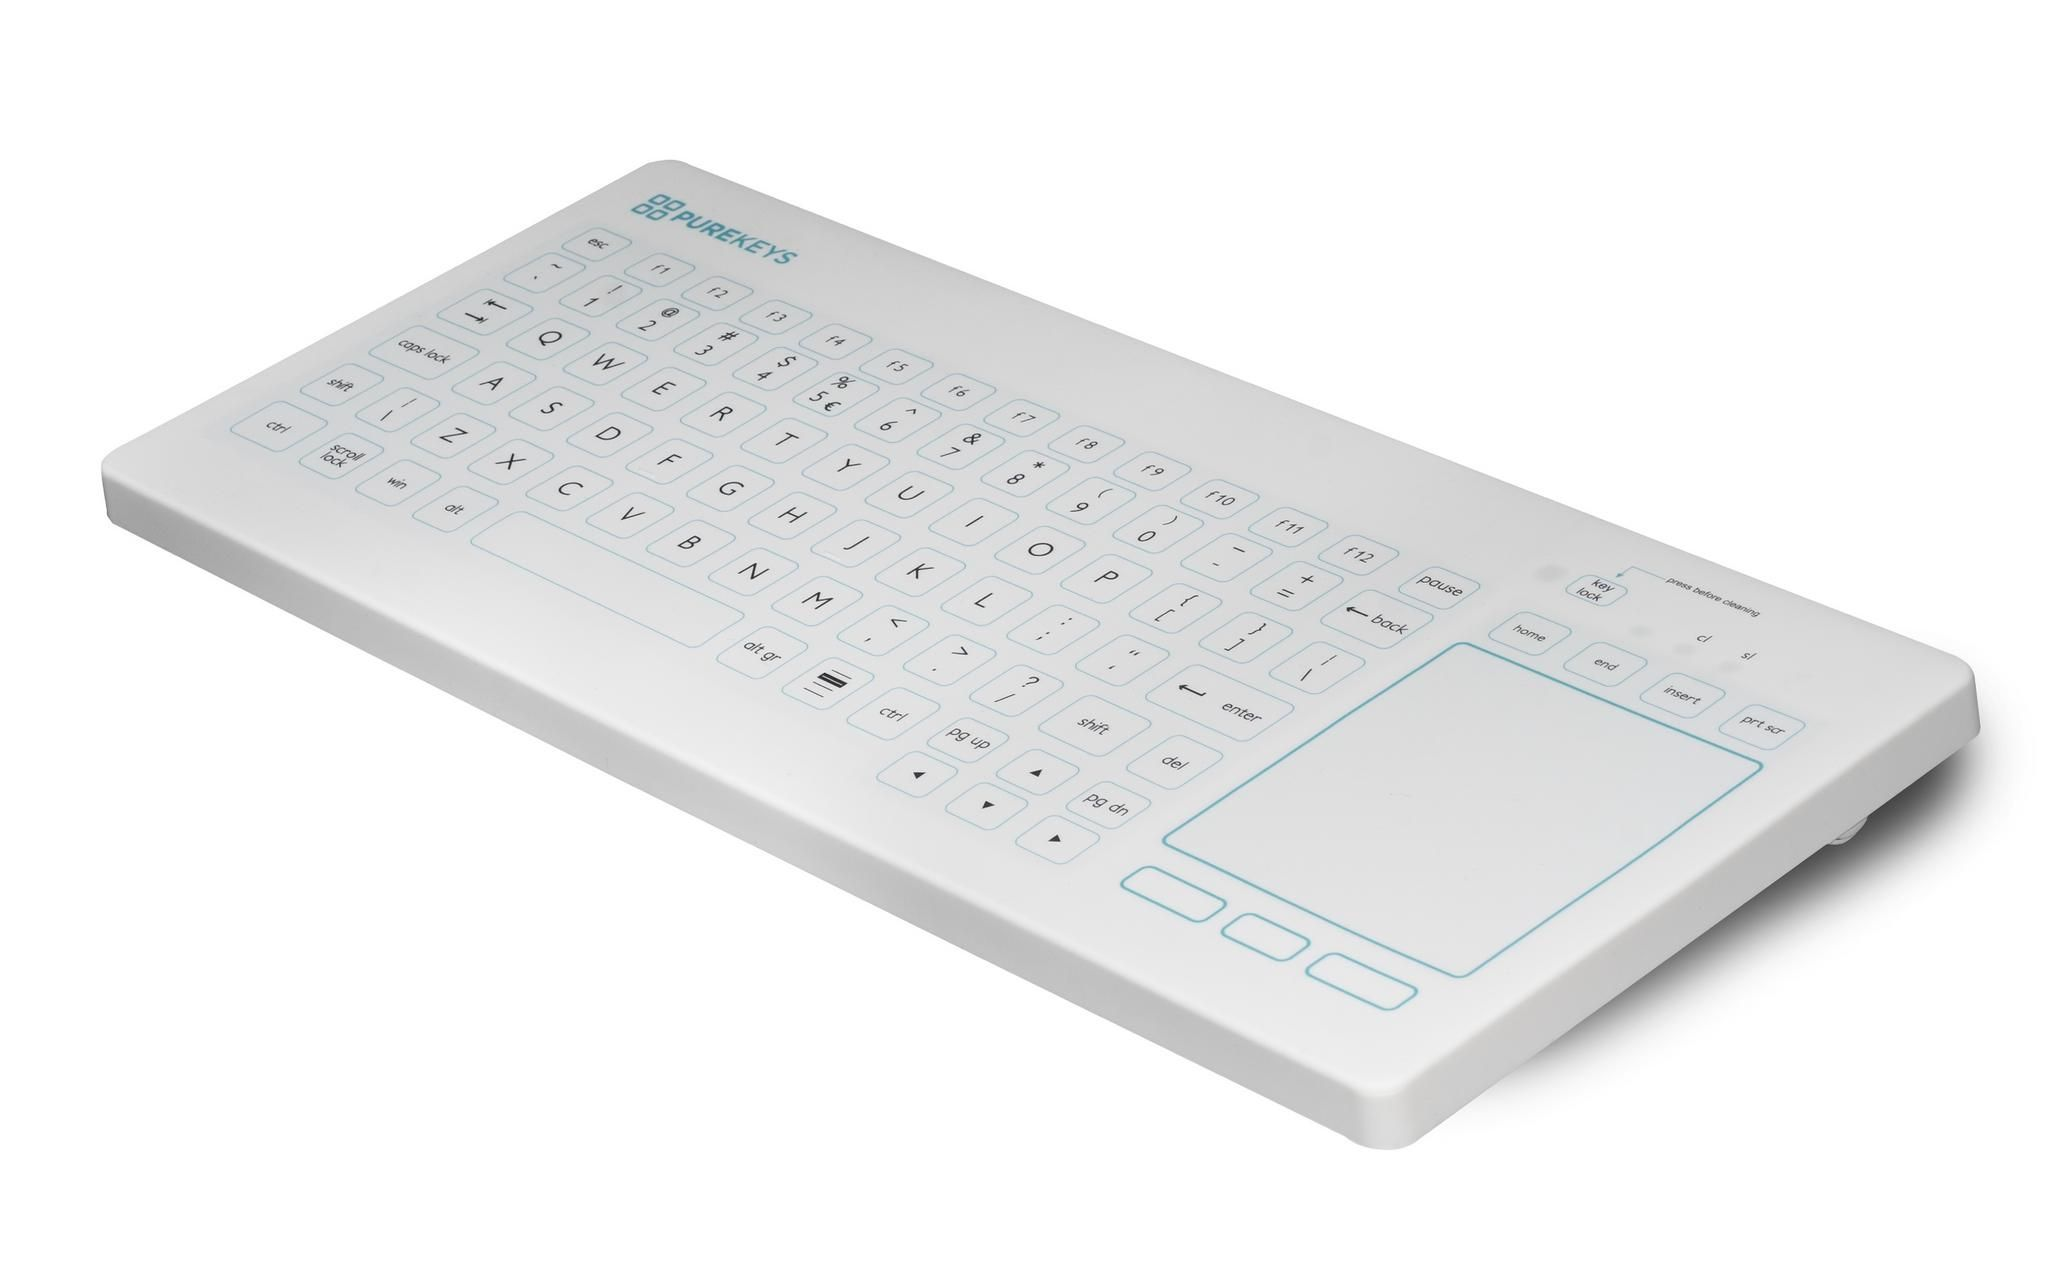 CliniTech Medical holds the key to further Infection Control Keyboard adoption, it's all about Touch!